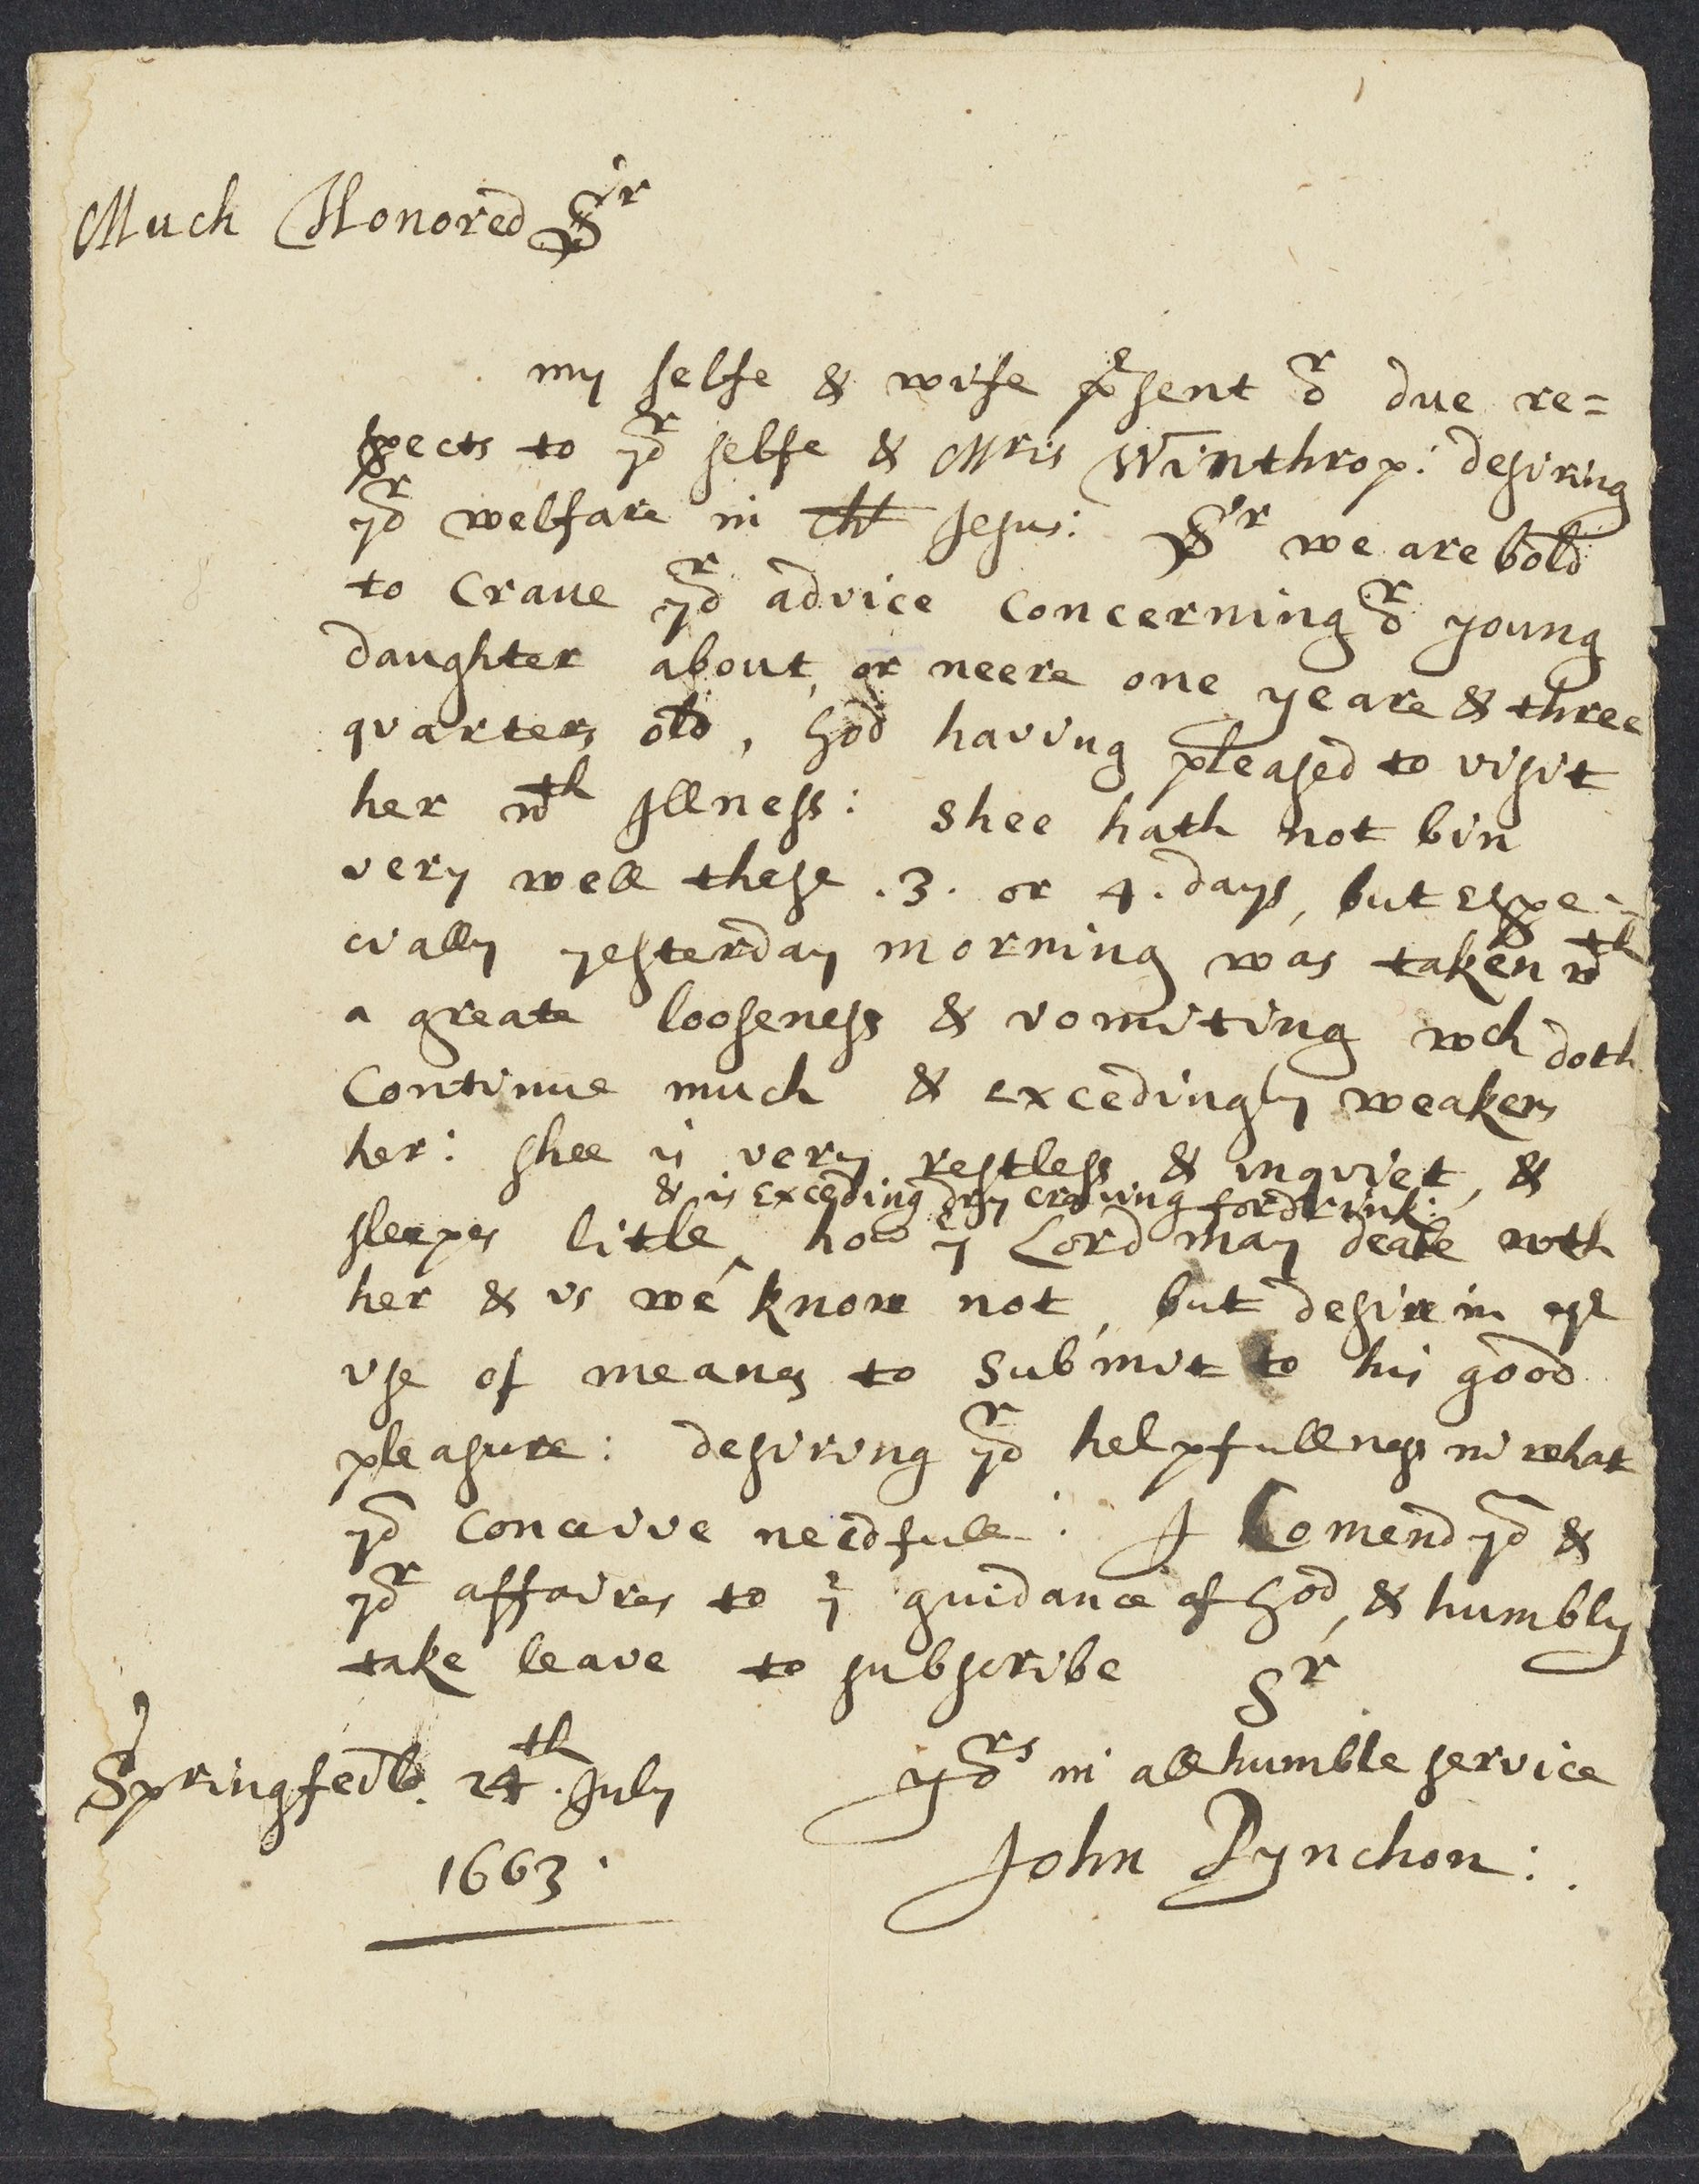 Pynchon, John, 1621-1703, autographed letter signed to John Winthrop; Springfield, Mass., 1 side (2 pages), 1663 July 24